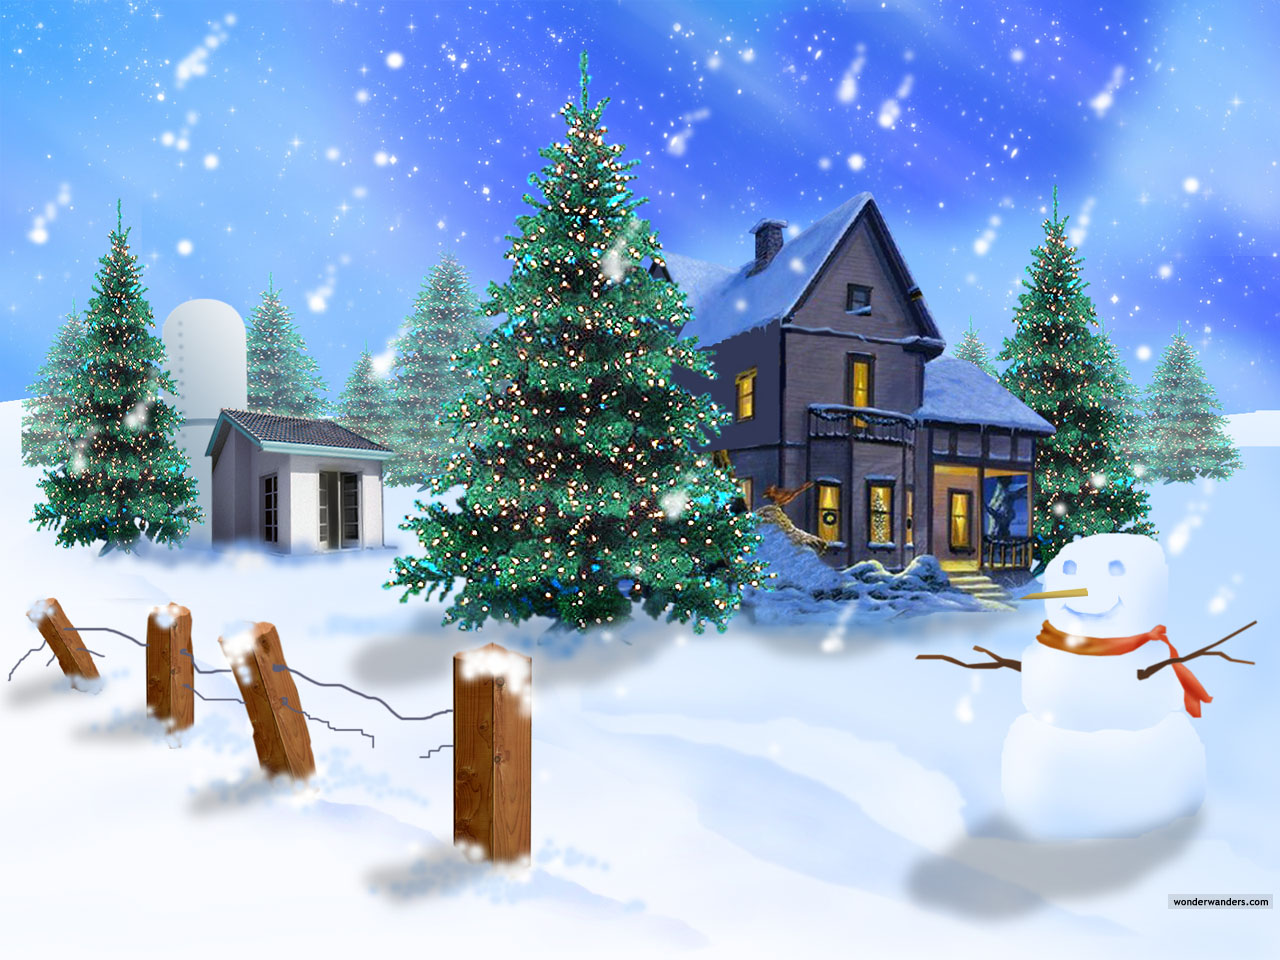 Free Christmas Scenes.8 Send New Years Greetings Text 2014